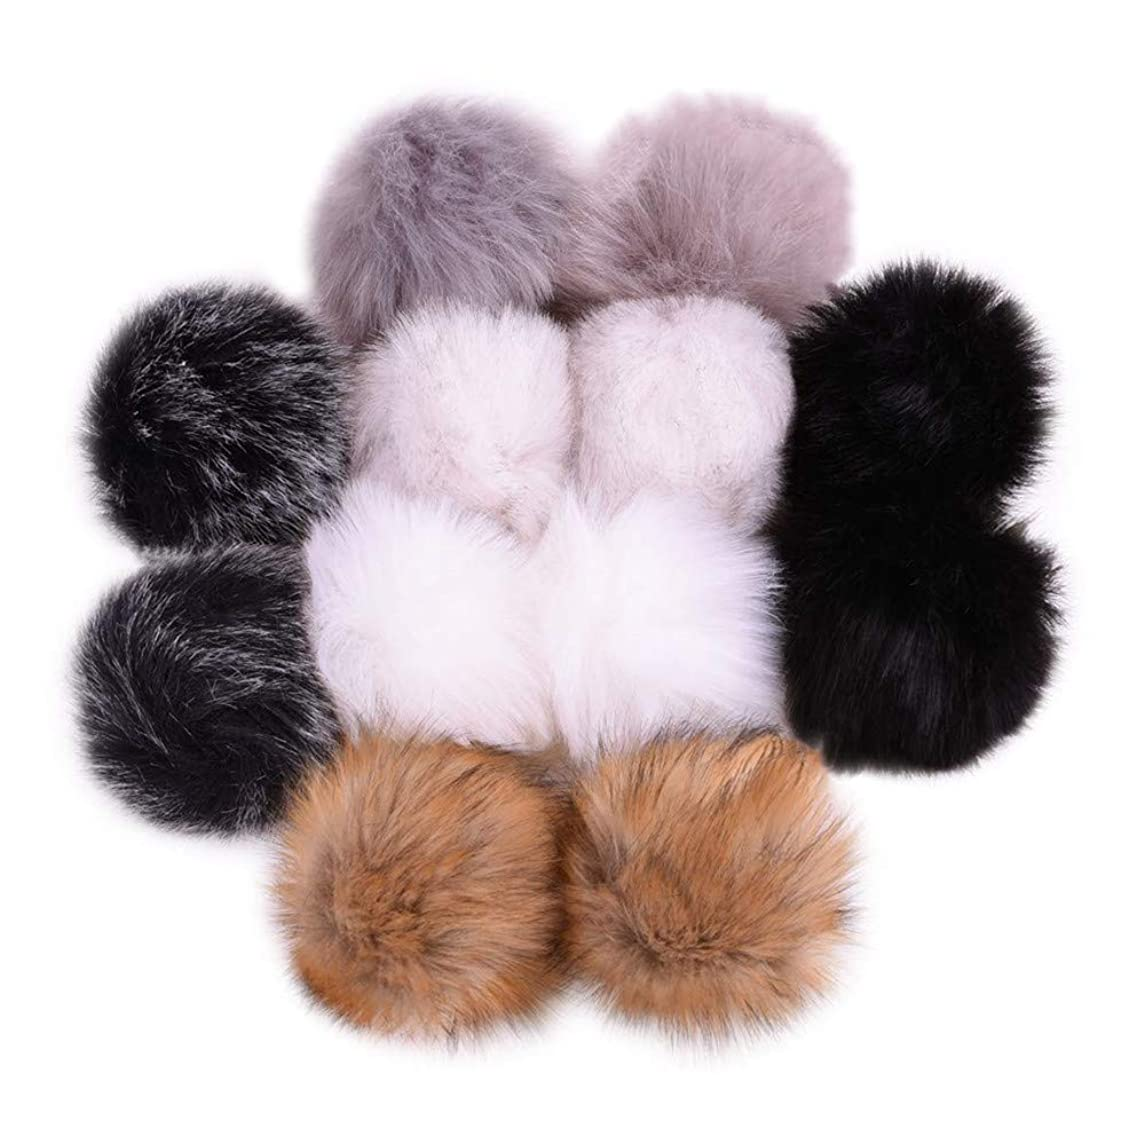 12 Pack DIY Faux Fox Fur Fluffy Pompom Ball for Knitting Hats, Shoes, Scarves, Keychains and Bag Charms, 4 inch Mix Colors